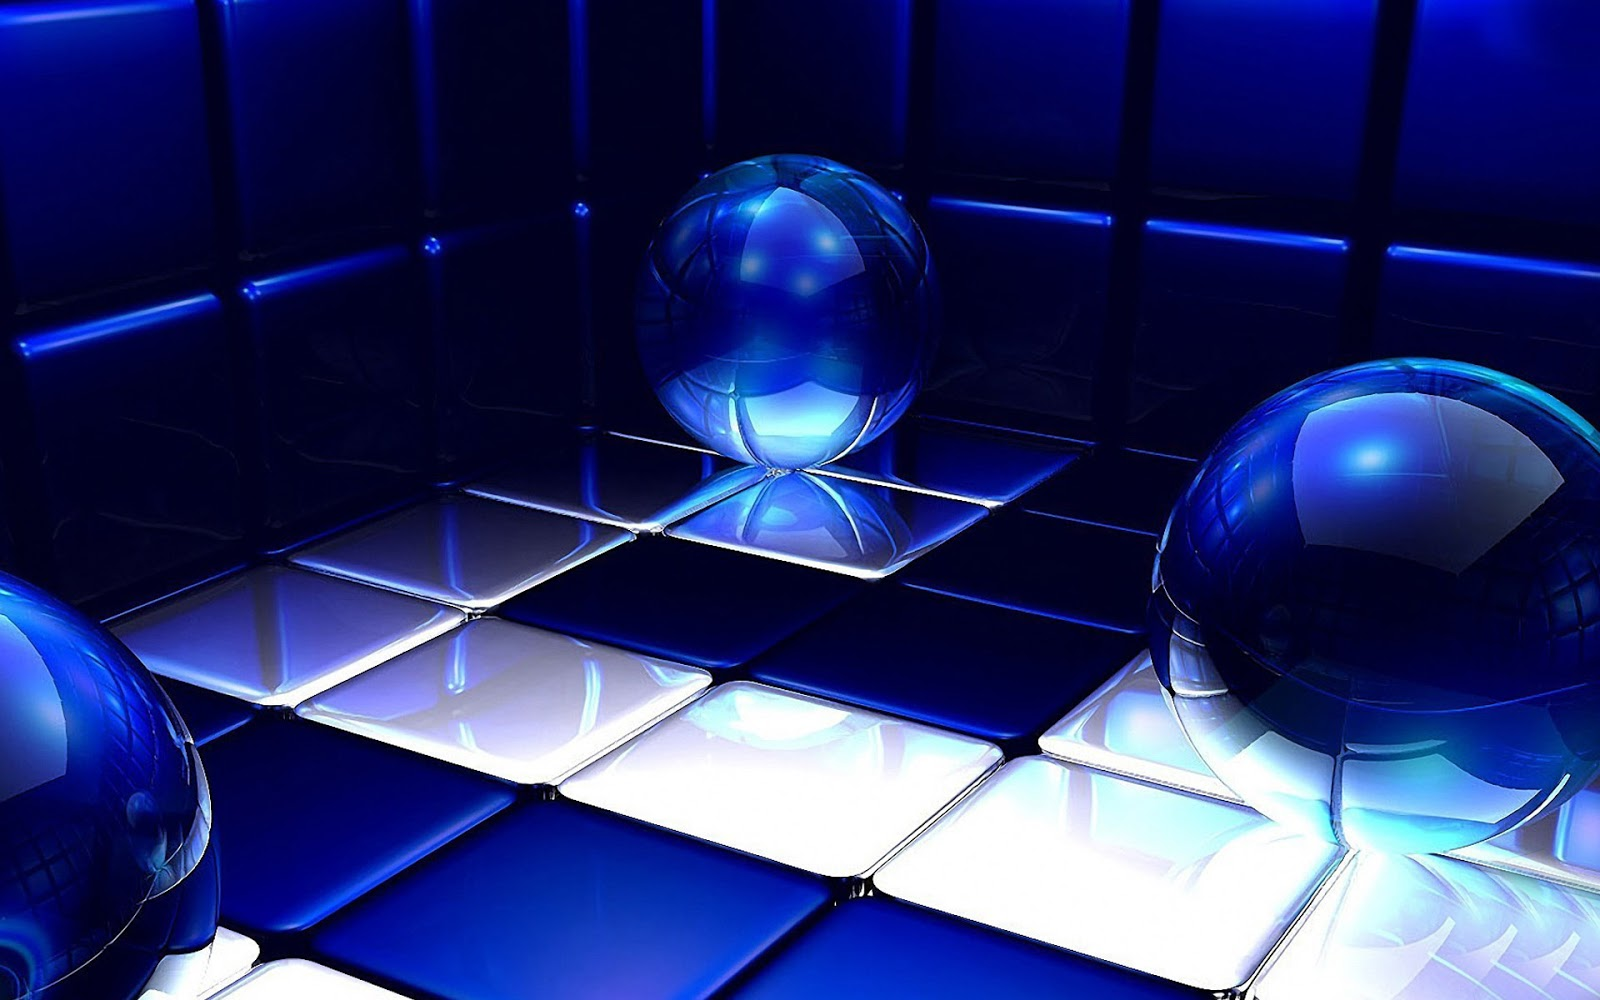 Colorful Wallpaper 3d Free Download: Ravishment: Creative 3D Wallpapers And Colorful 3D